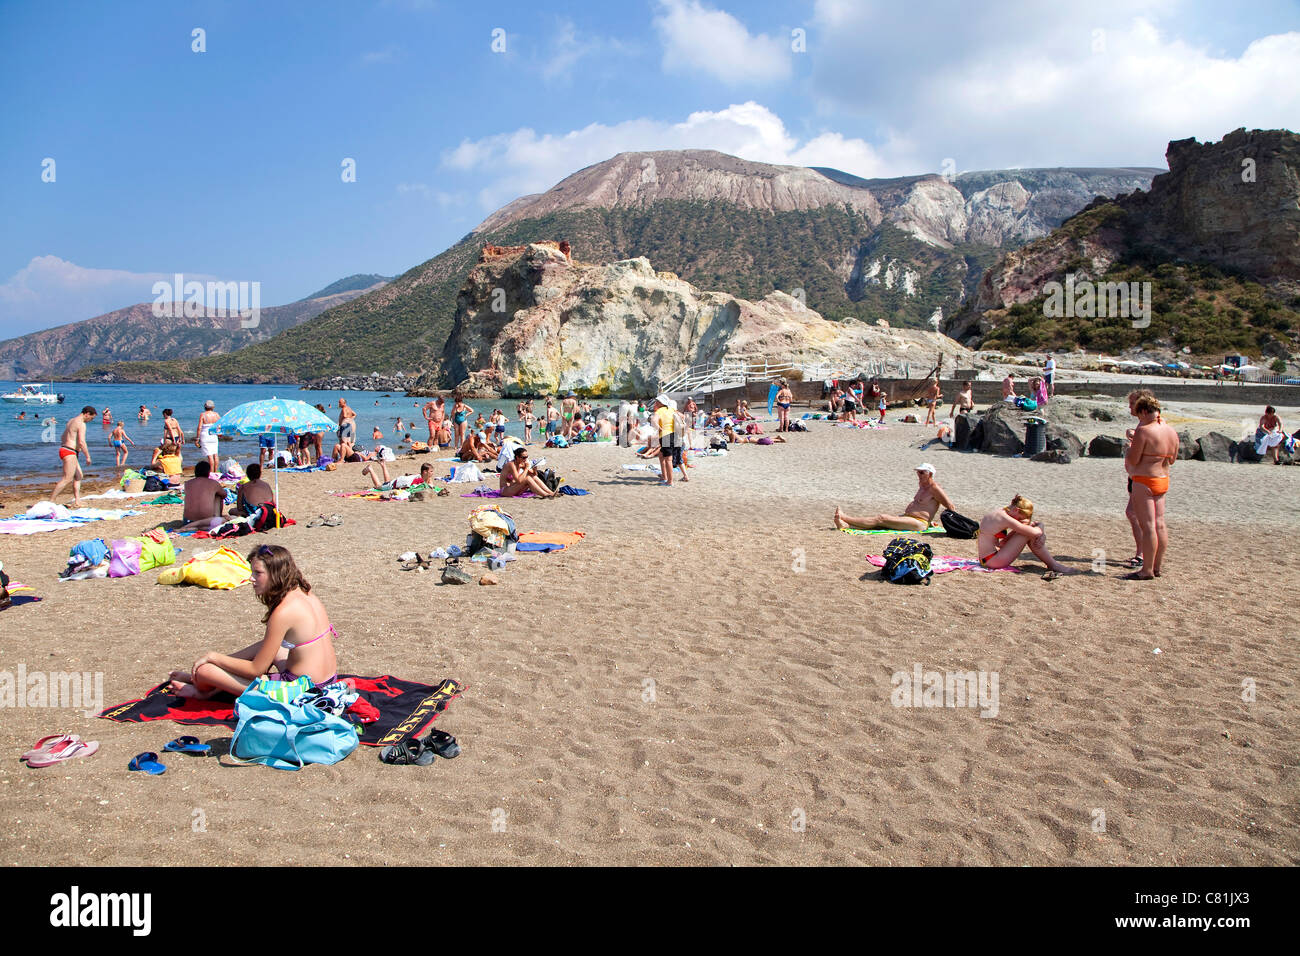 People on the beach, island of Vulcano, active volcano in Eolie, Aeolian Islands, Sicily, Sicilia, Italy - Stock Image